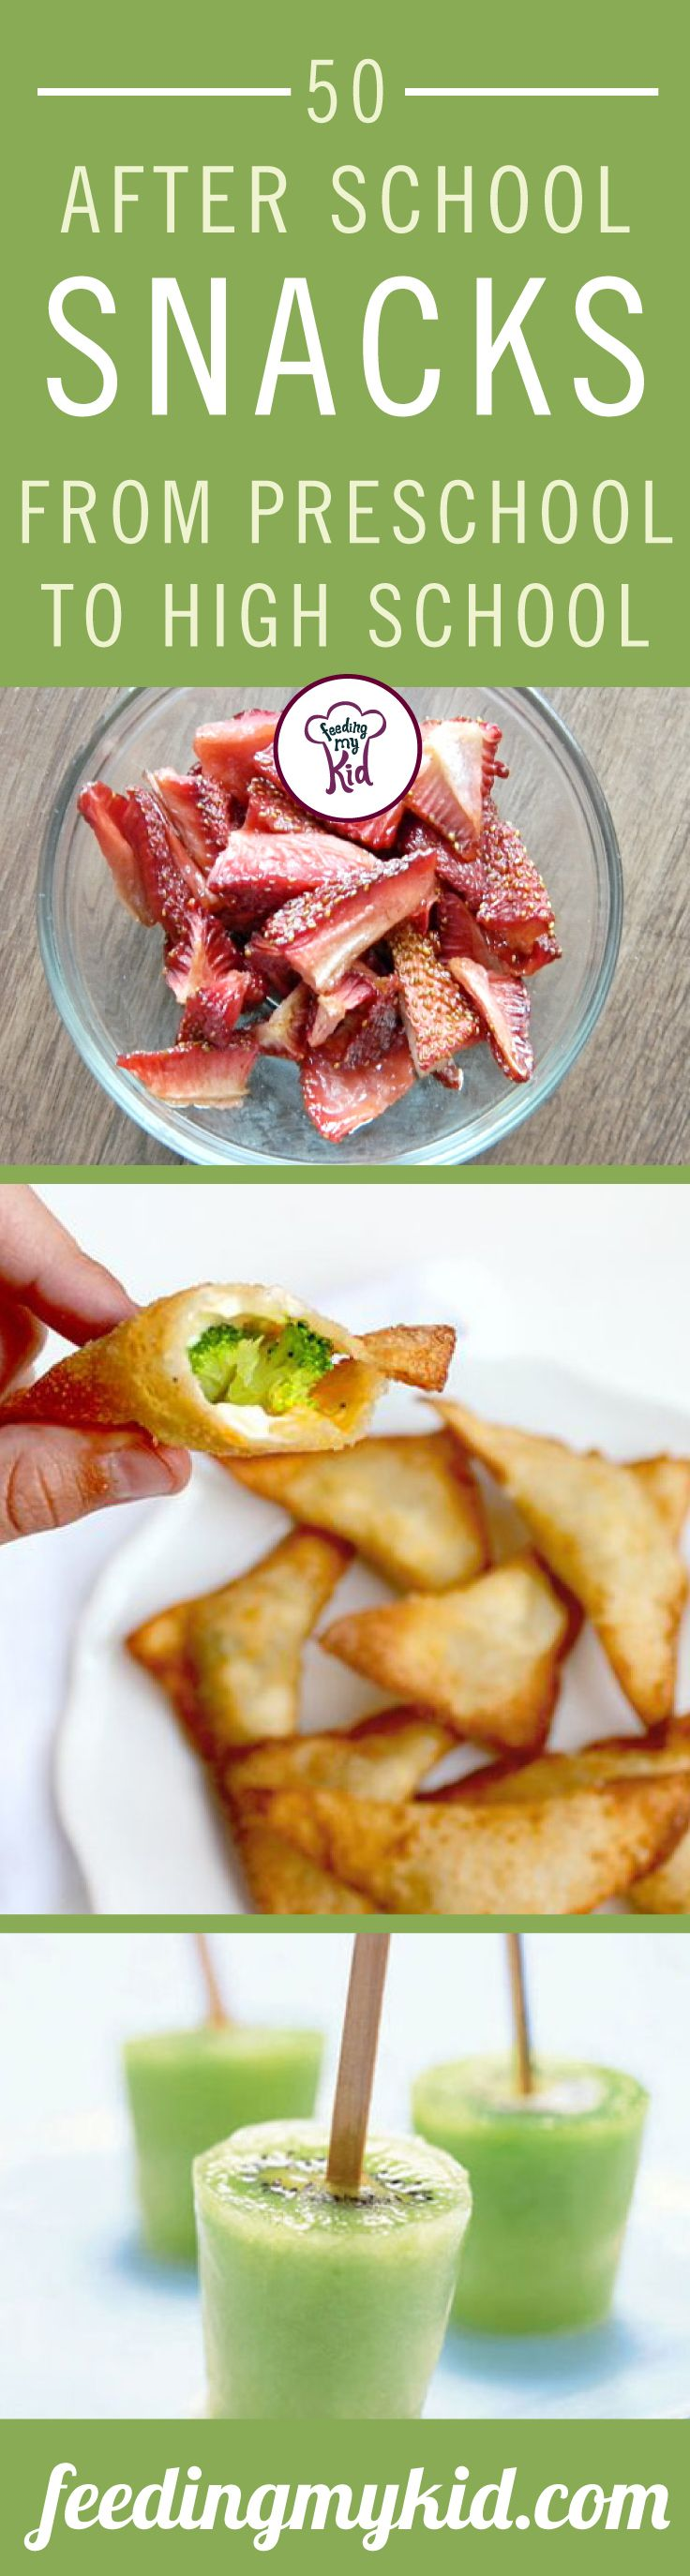 This is a must share! Try these after school snacks! They are a great way to ensure that your kids are eating right. From kiwi ice pops to banana split bites! This is a must share!   Feeding My Kid is a great website for healthy tips, recipes, and ways to eat clean. #fmk #recipes #snacks #afterschoolsnacks   This article is for you if you are looking for after school snacks for kids or healthy after school snacks.   Get tons of fresh and healthy ideas.